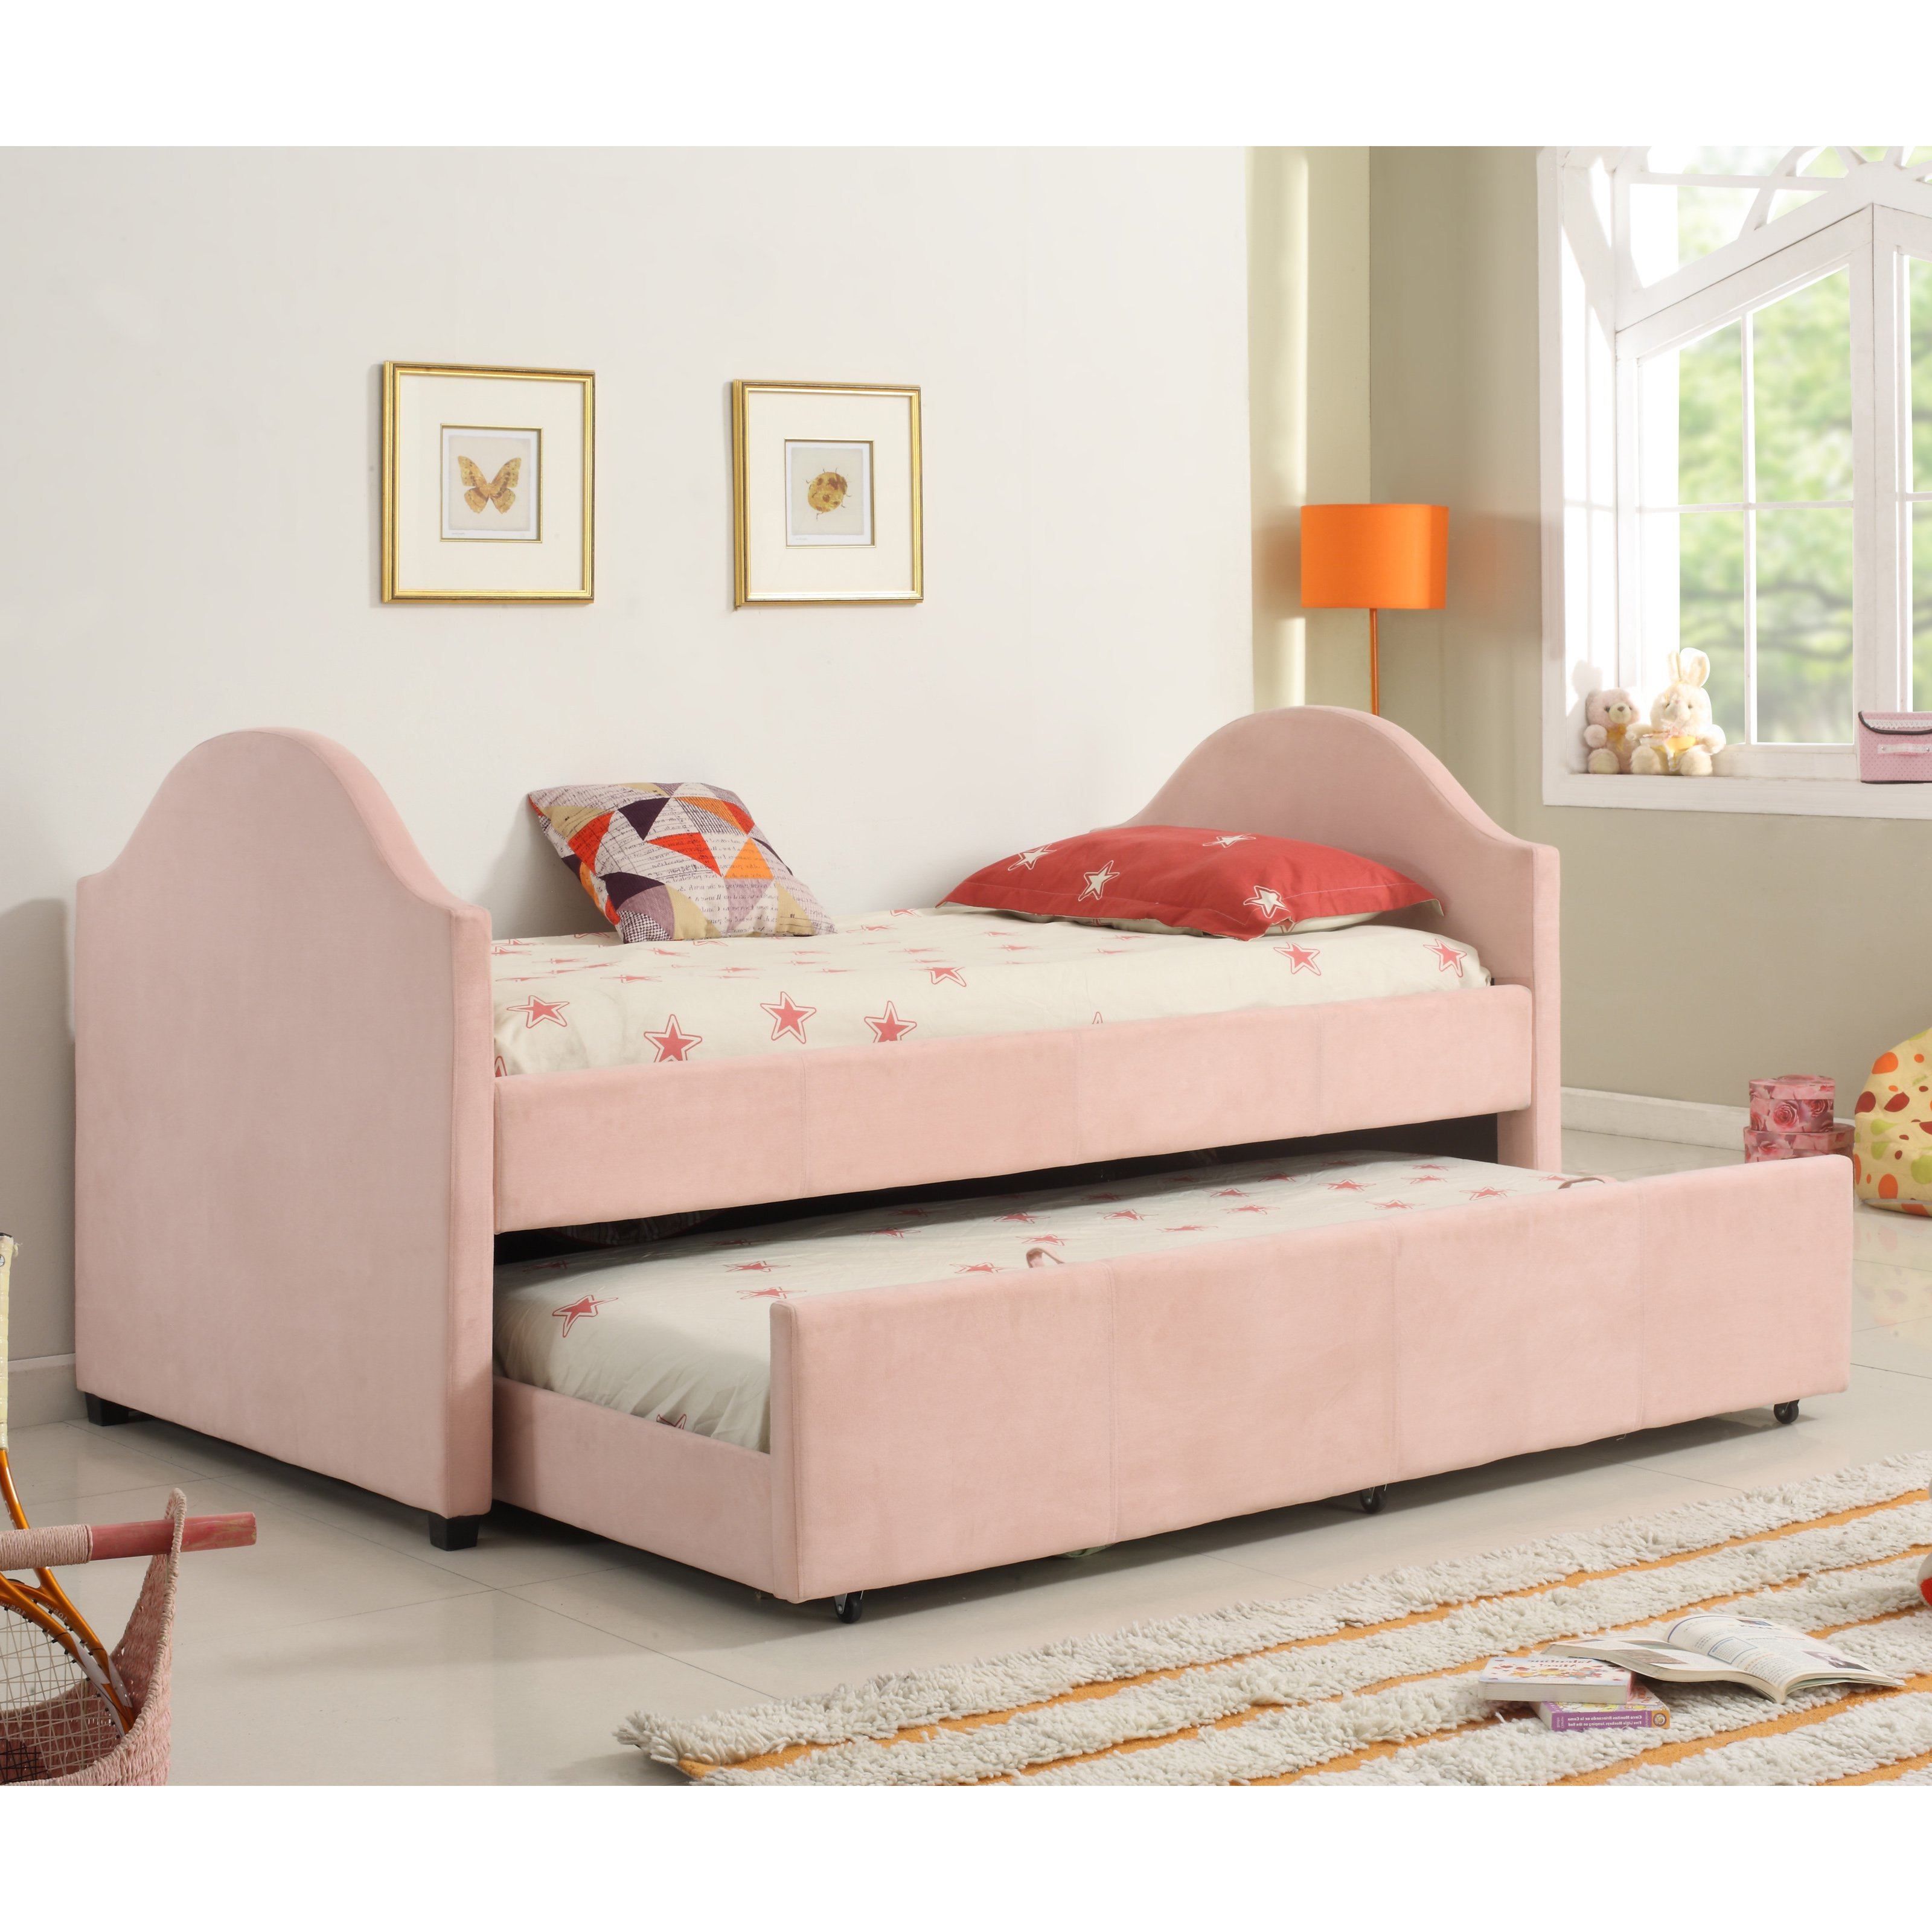 Milton Greens Jeffrey Captains Bed with Twin Size Trundle Bed